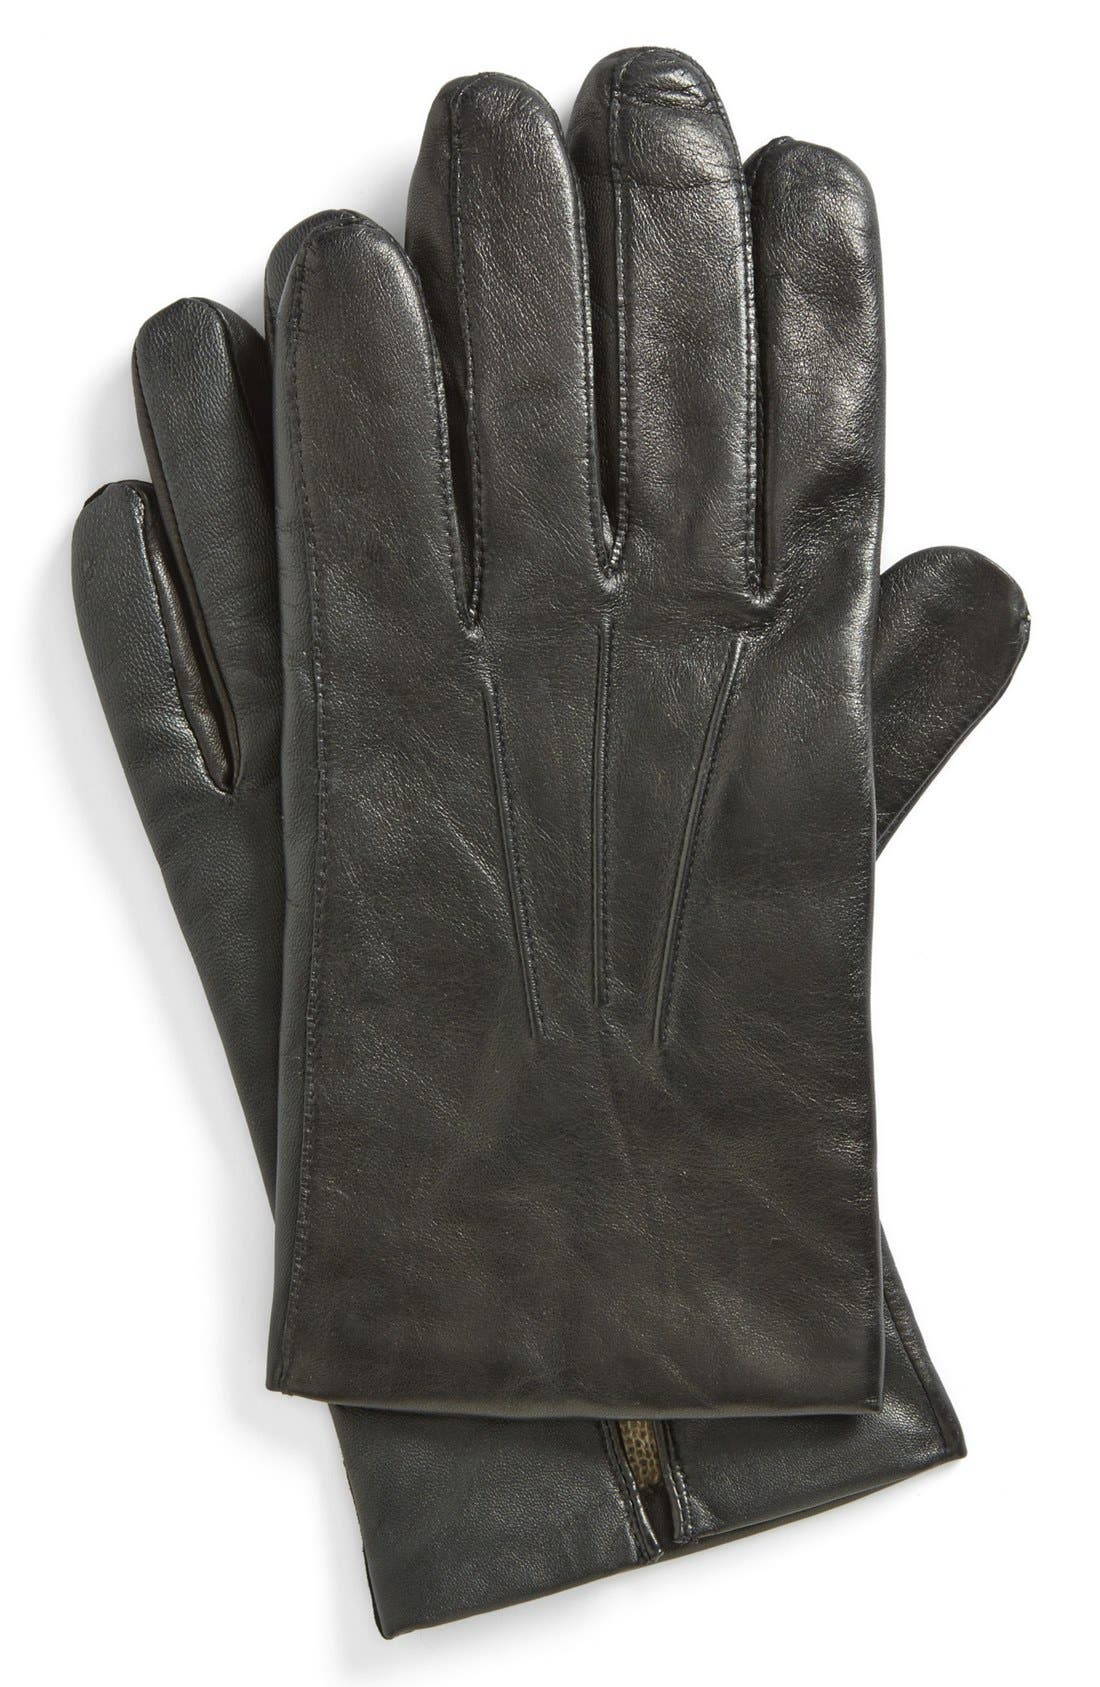 Main Image - John W. Nordstrom Tech Leather Gloves